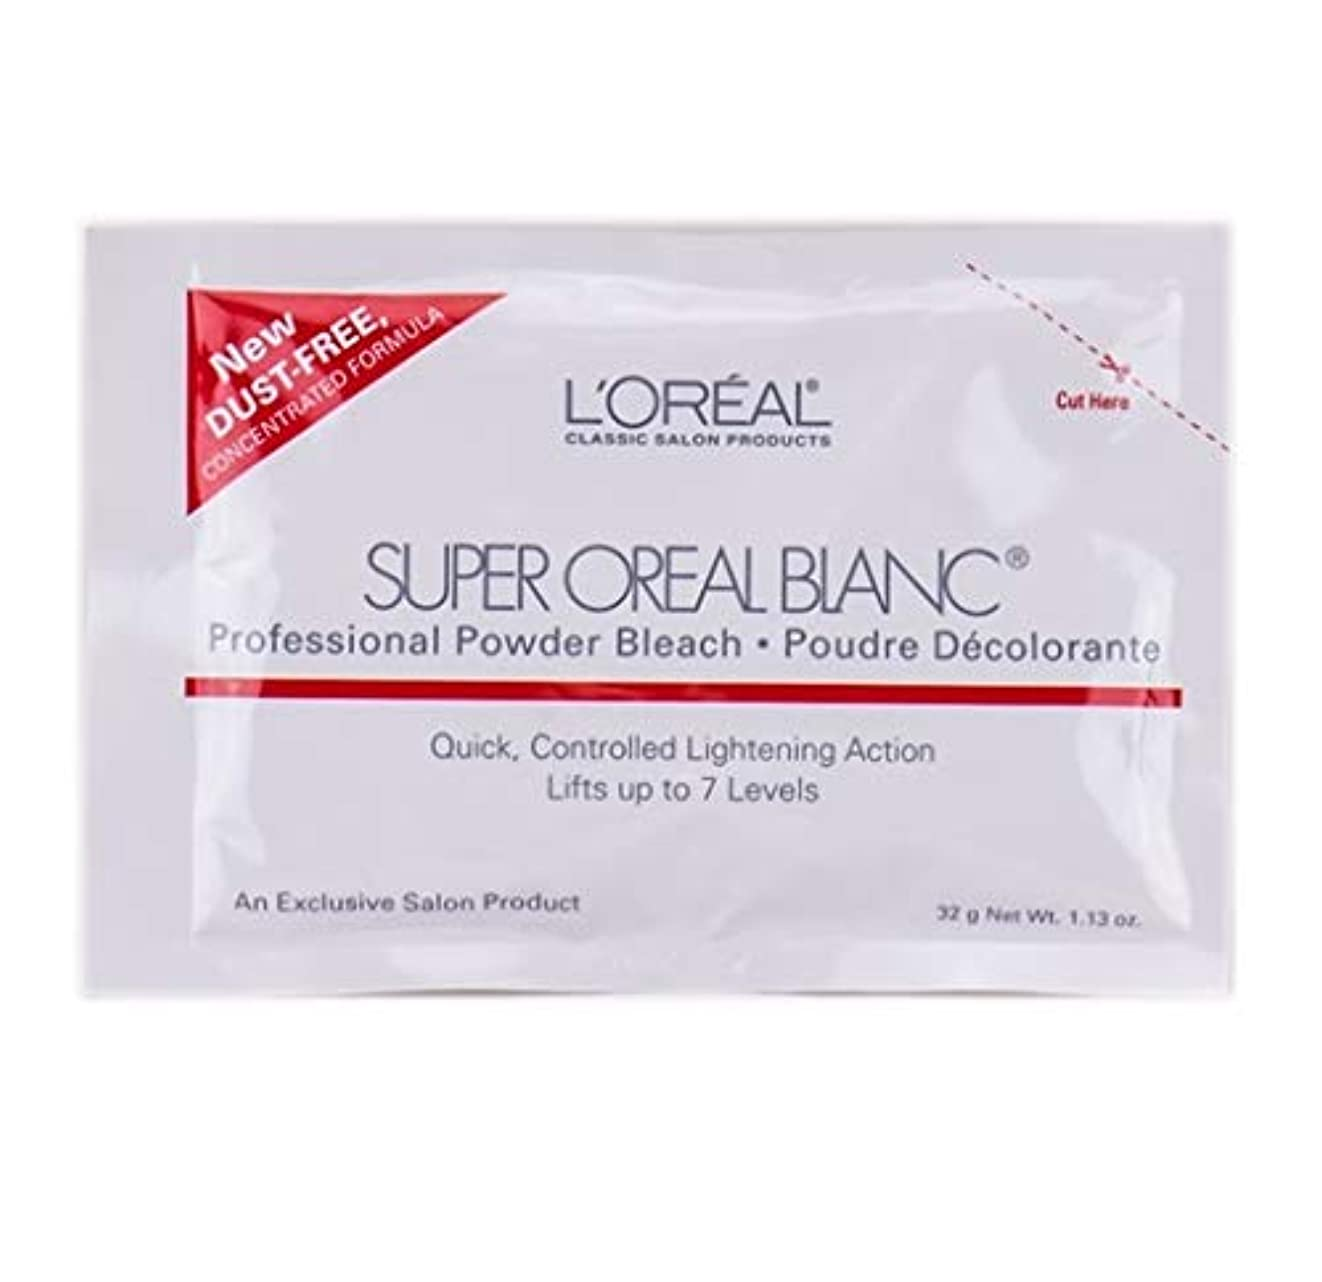 食堂論争の的手がかりL'Oreal Super Oreal Blanc - Powder Bleach Packette - 1.13oz / 32g